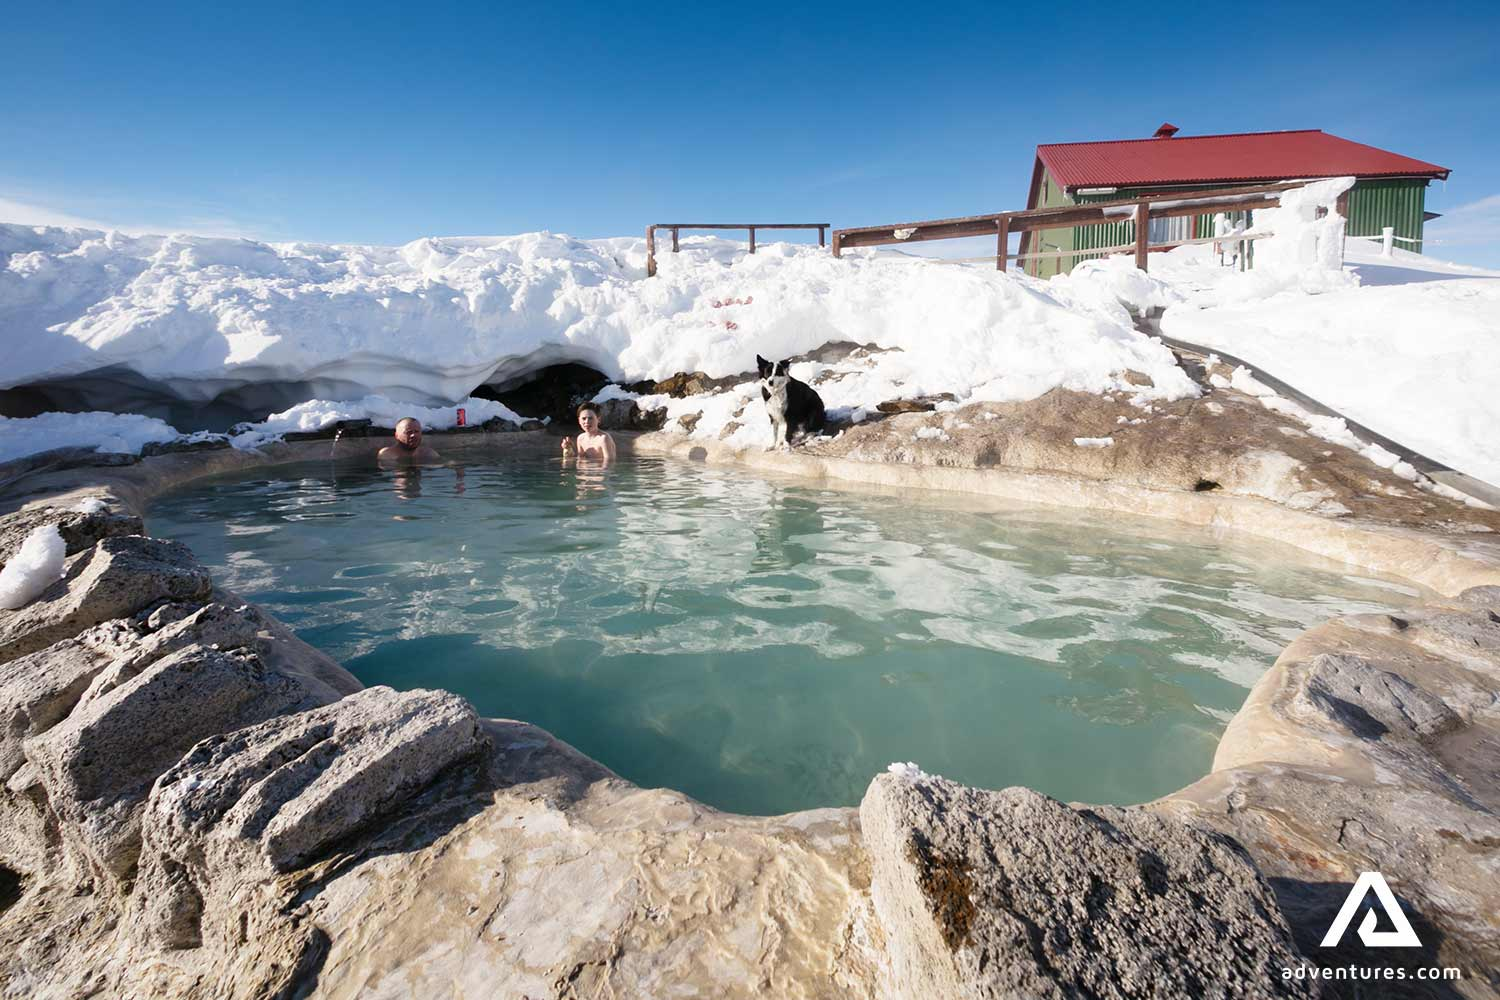 The Hveravellir thermal pool in winter